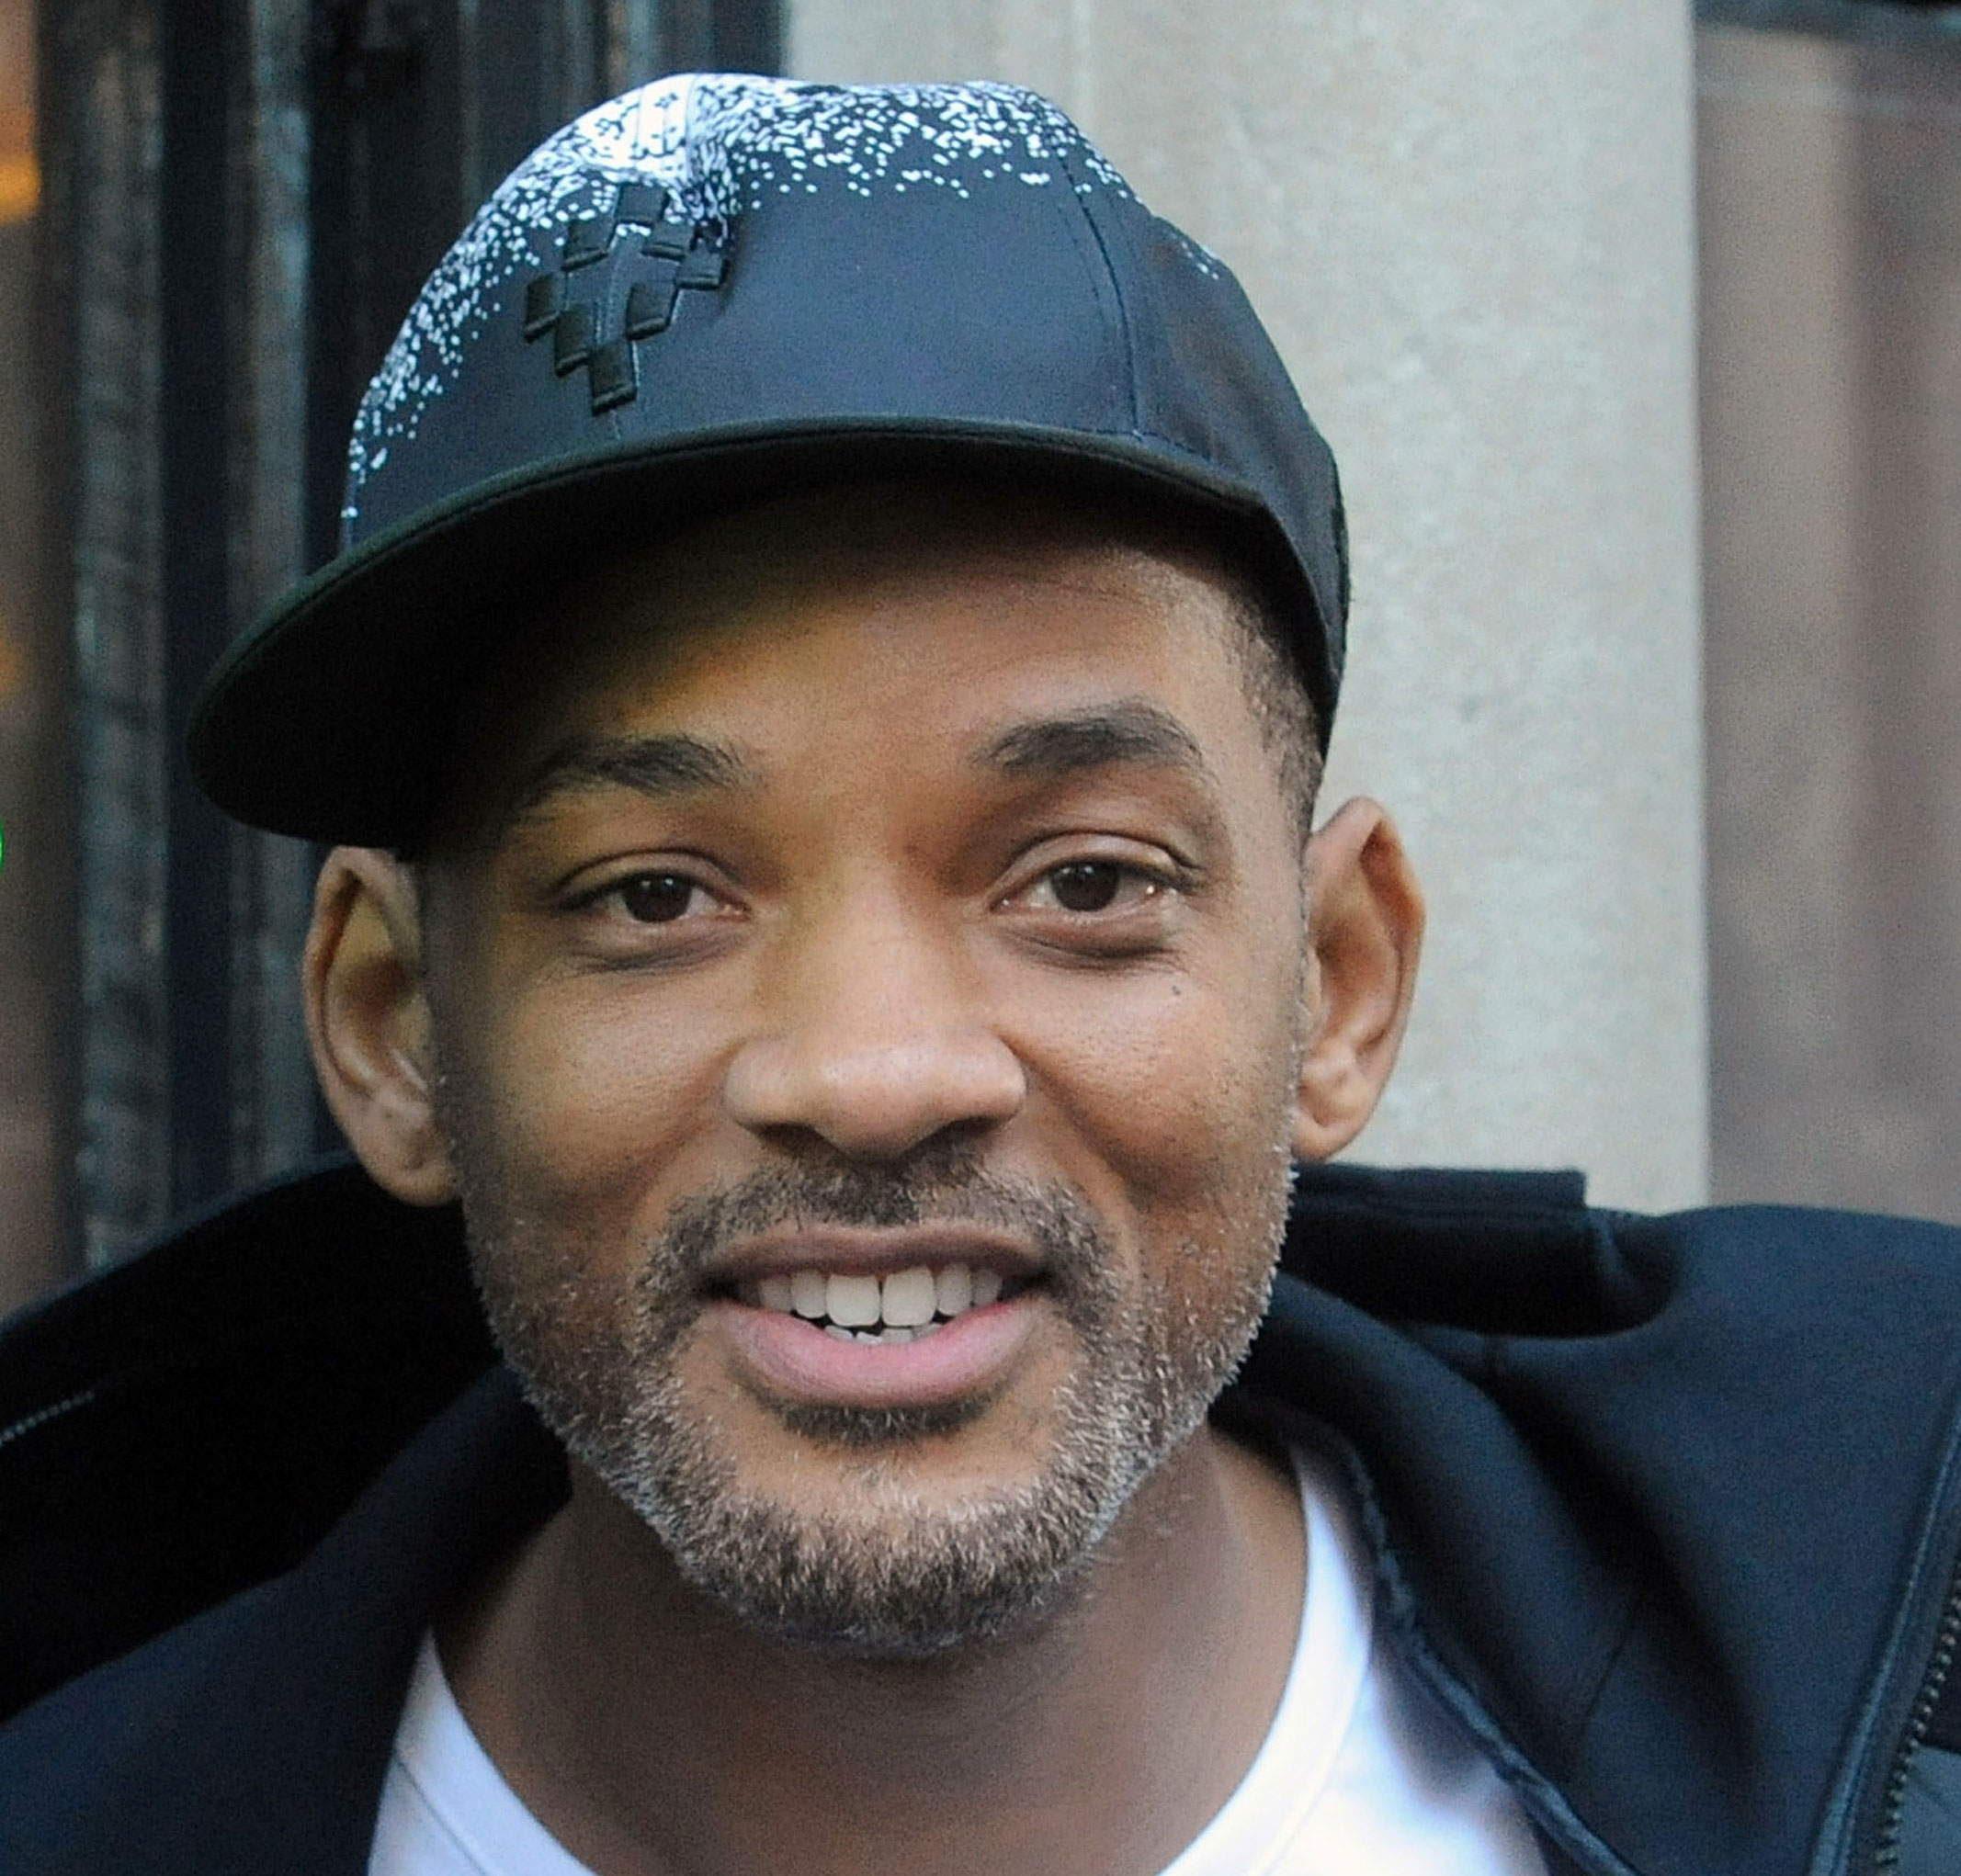 Will Smith Steroids Was will smith 'an a**hole on steroids' during ... Will Smith